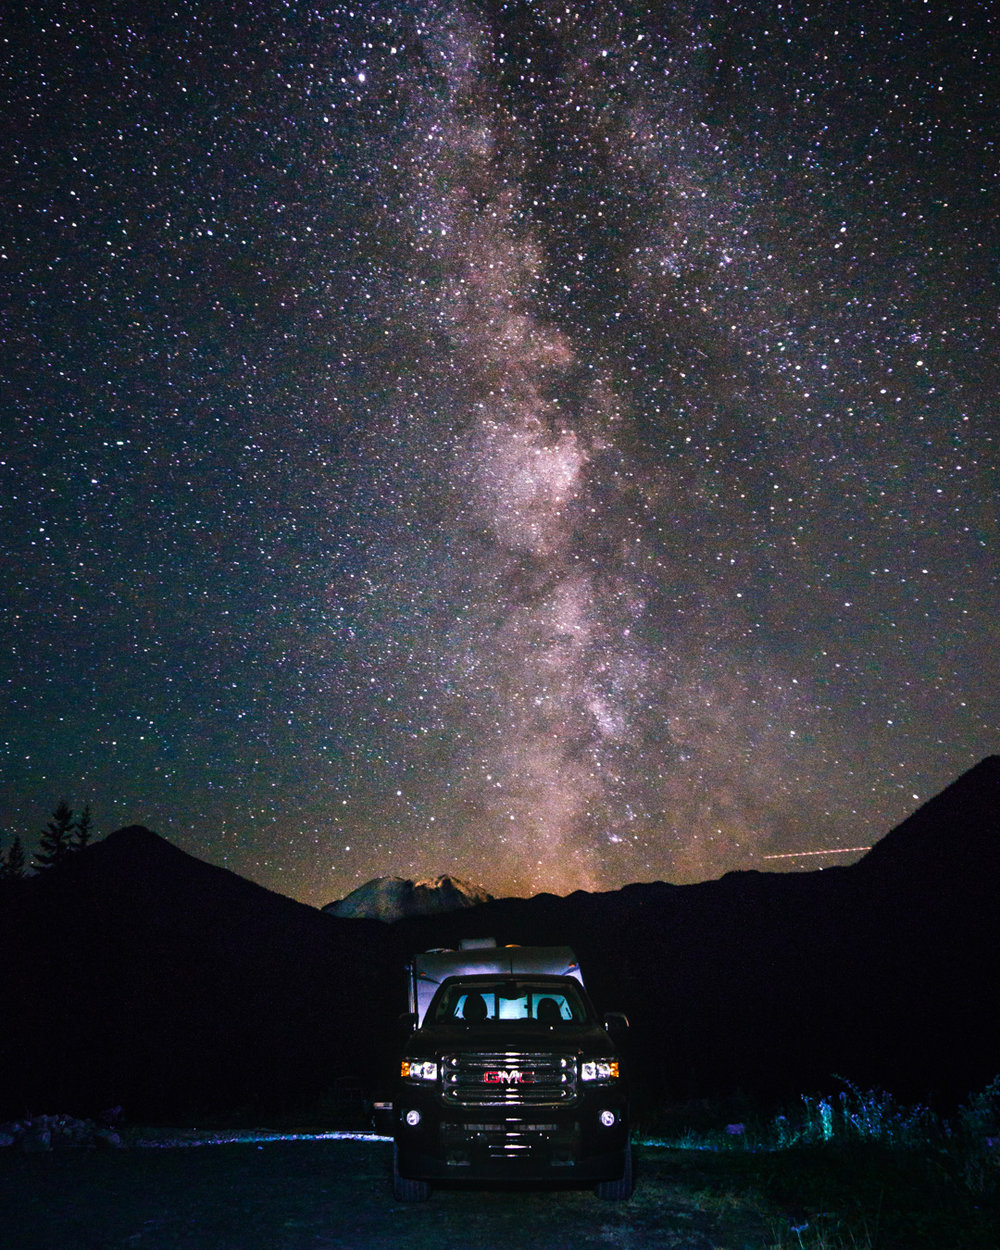 Our boondocking spot near Mt.Ranier is quite easily one of our top boondocking spots ever. With a little curiosity we were able to find this spot, and were treated to Milky Way views at night. The daytime views were just as epic!